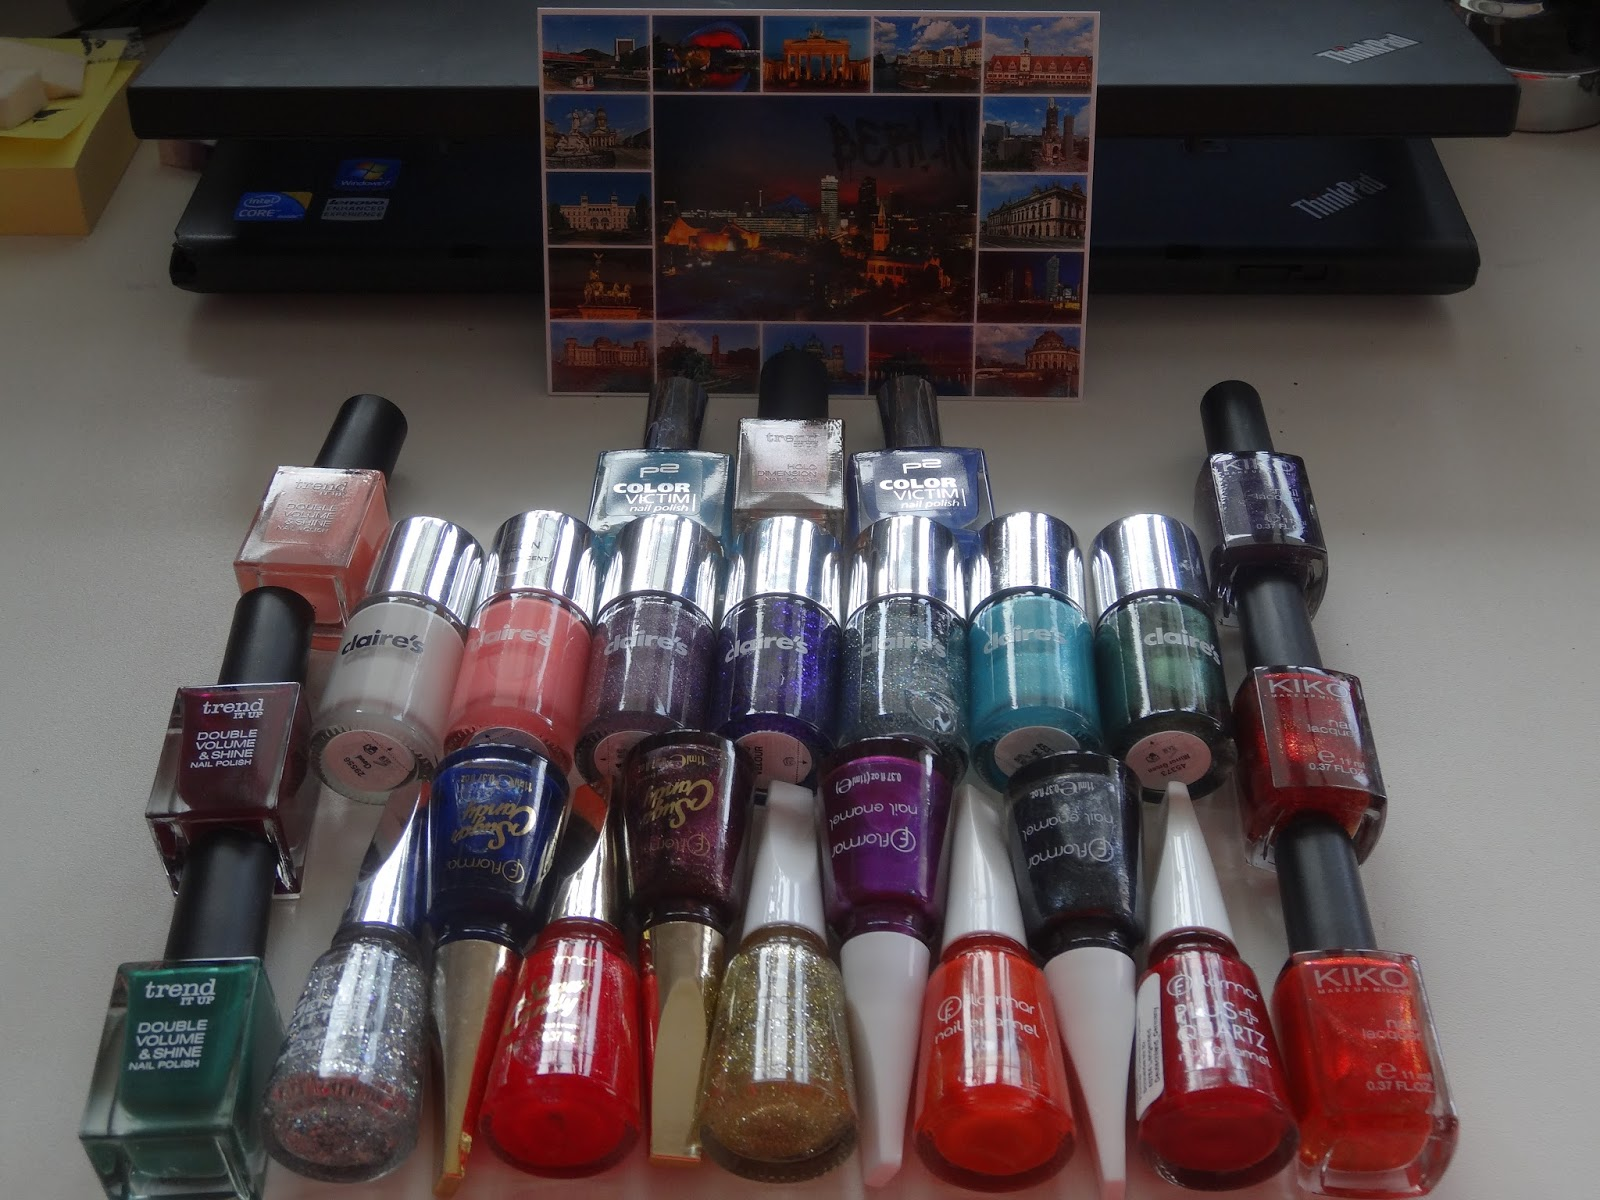 bd1f9fe618 I want to start with the claire's polishes. They still had the same deal  that I mentioned in my previous post (link above): Buy 3 Pay 2.